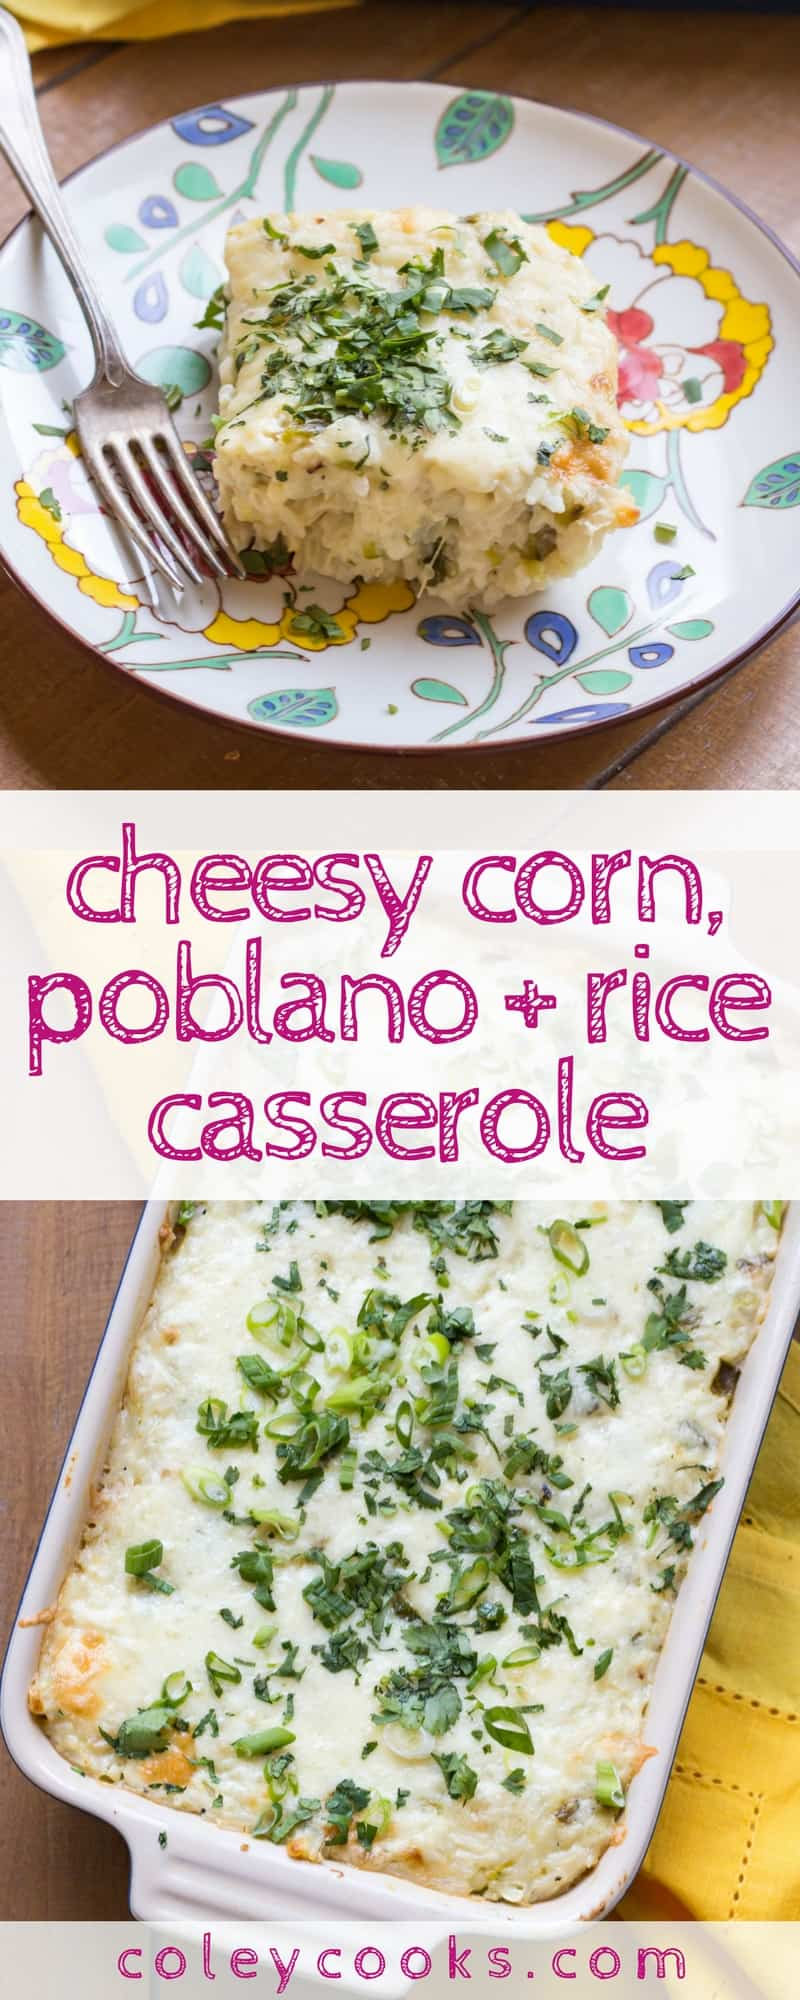 CHEESY CORN, POBLANO + RICE CASSEROLE | Easy to make, feeds a crowd, and is absolutely delicious! Makes a great side with tacos, fajitas, enchiladas and any other Mexican food #glutenfree | ColeyCooks.com